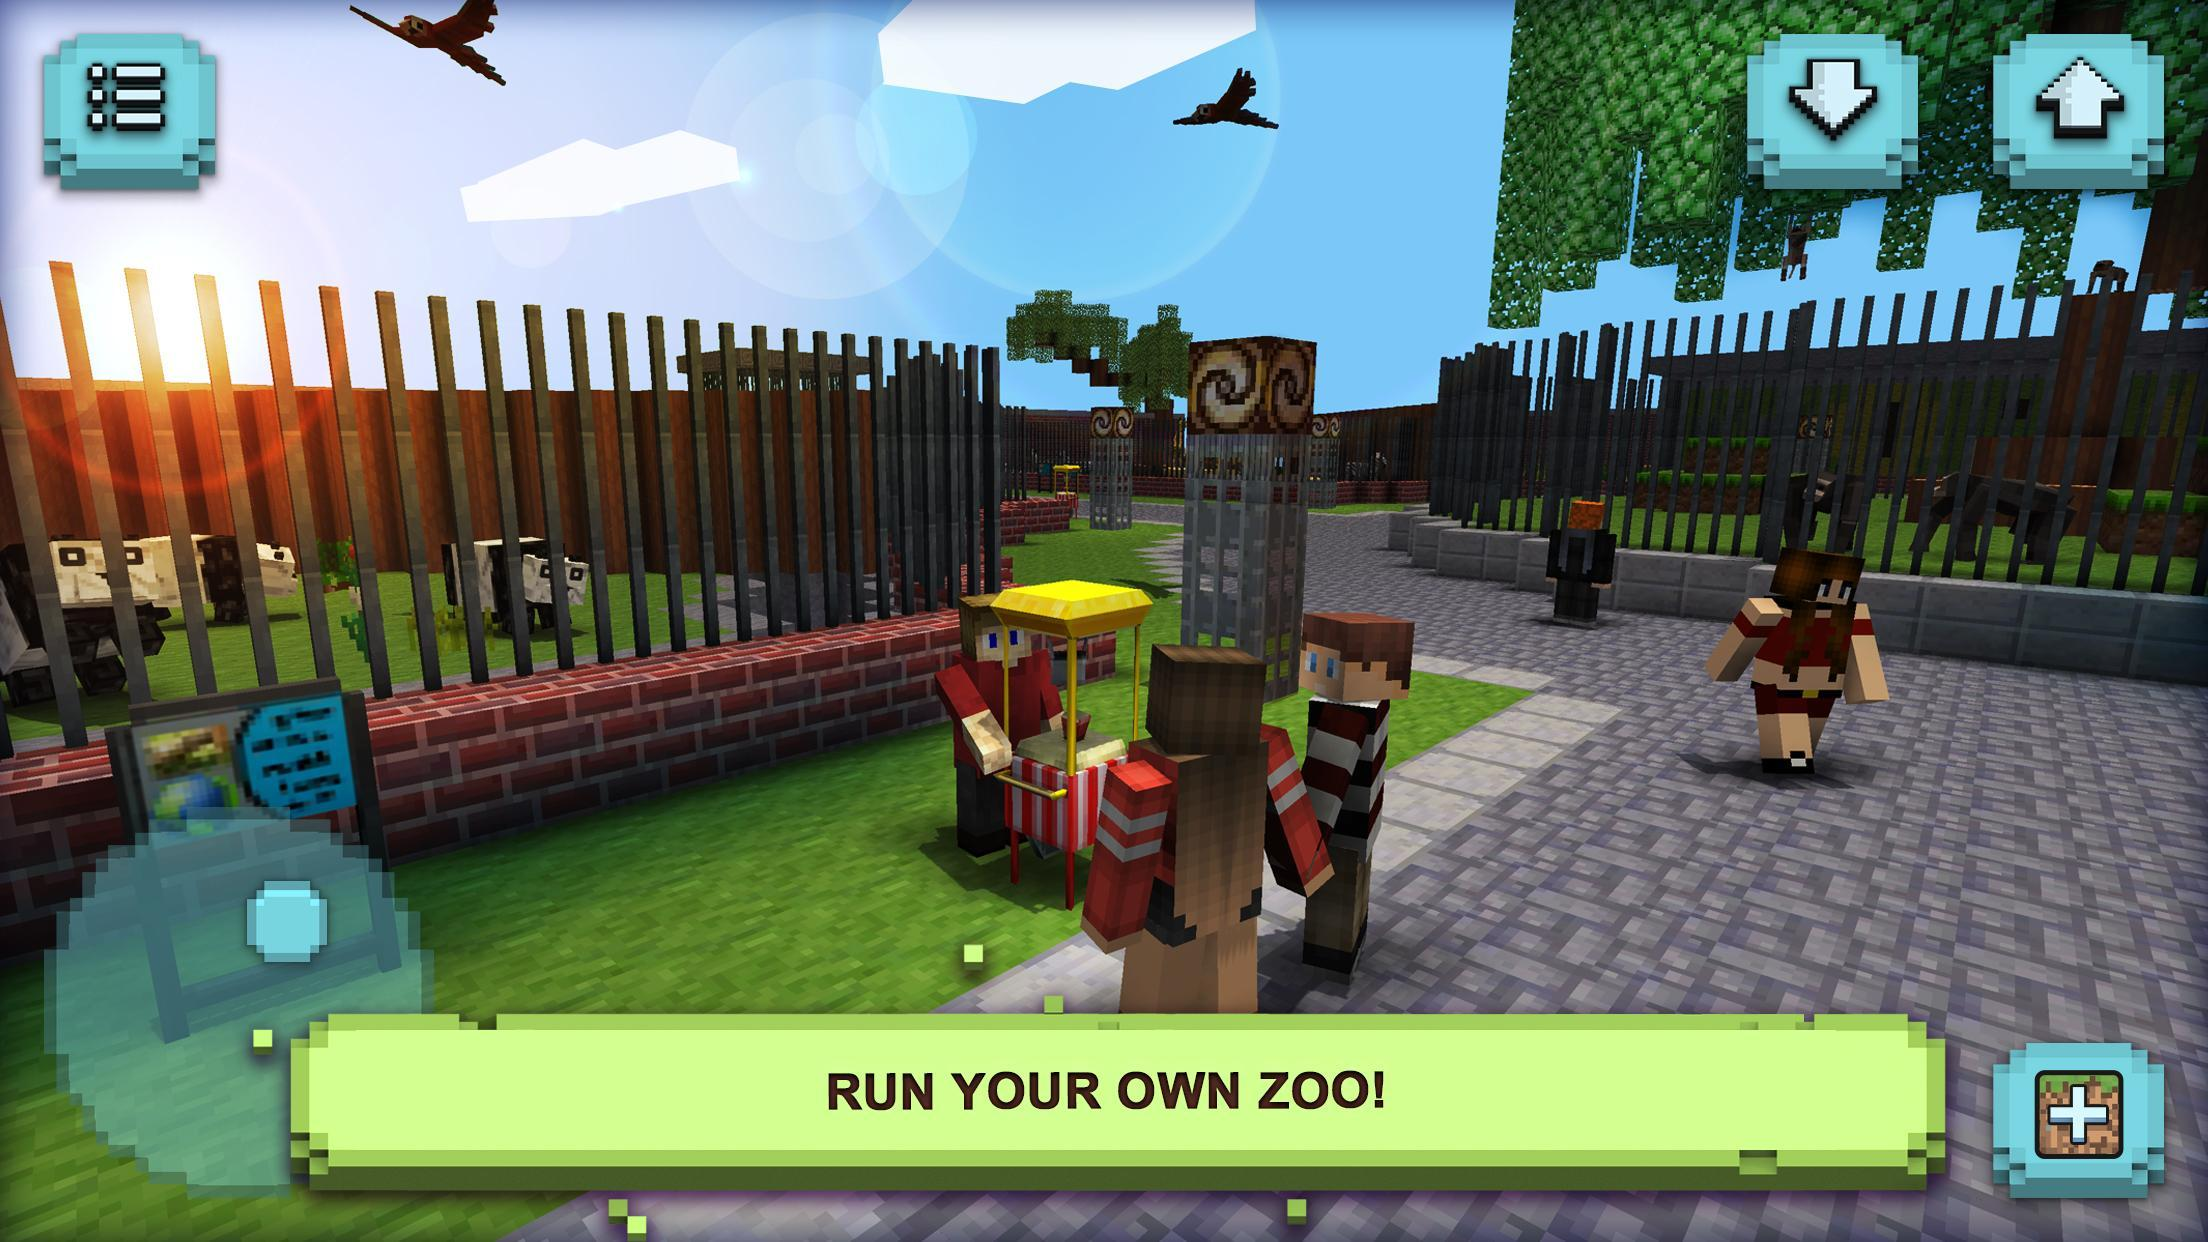 Zoo Tycoon Craft: My Wonder Animals for Android - APK Download